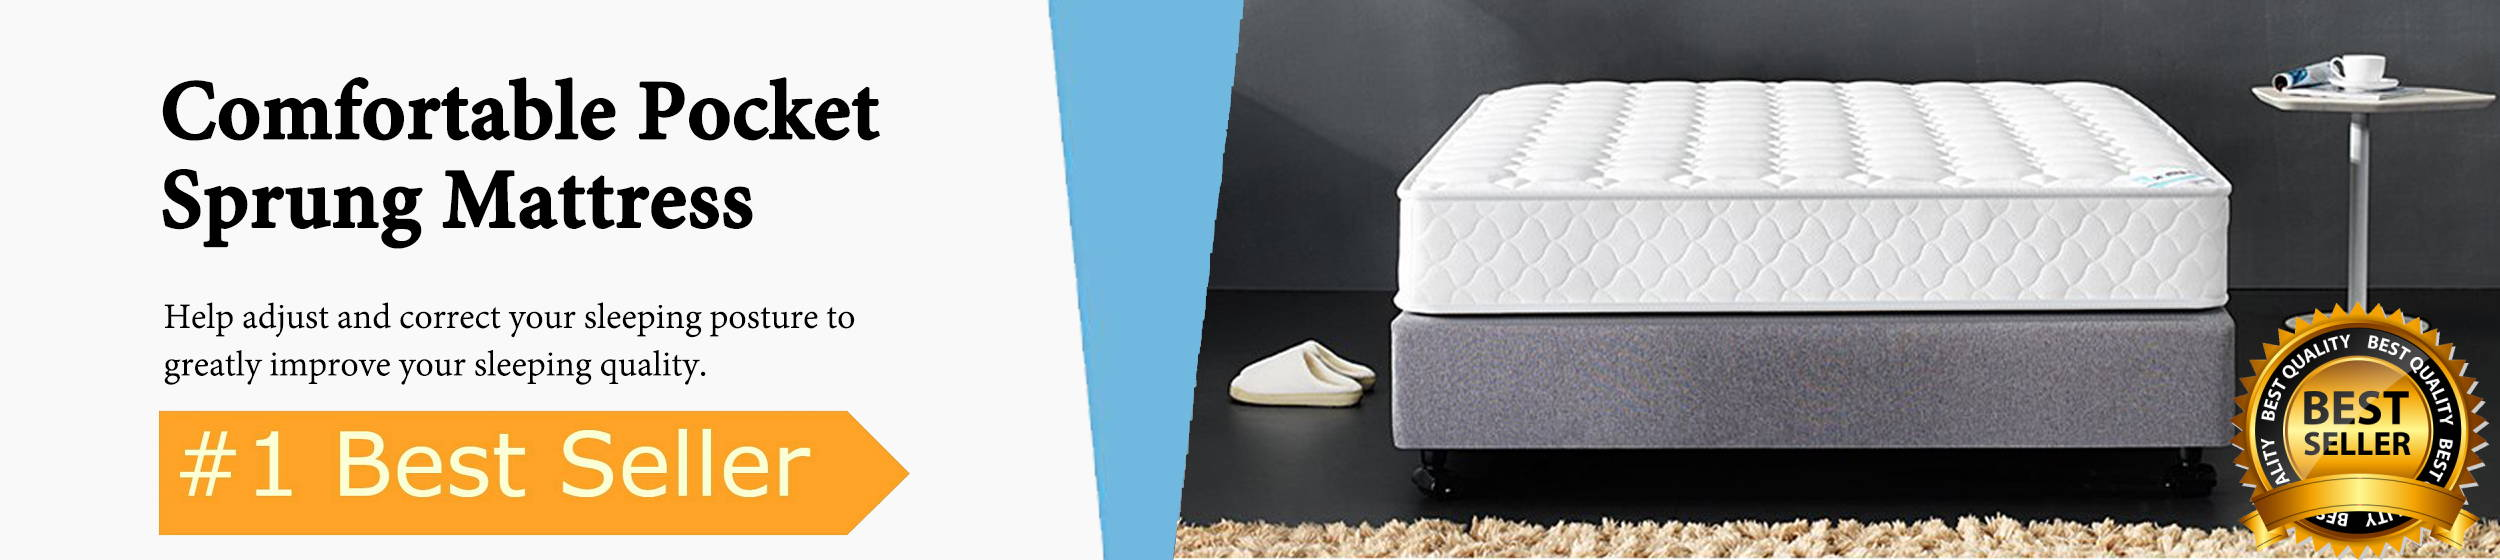 Homylink pocket srpung mattress